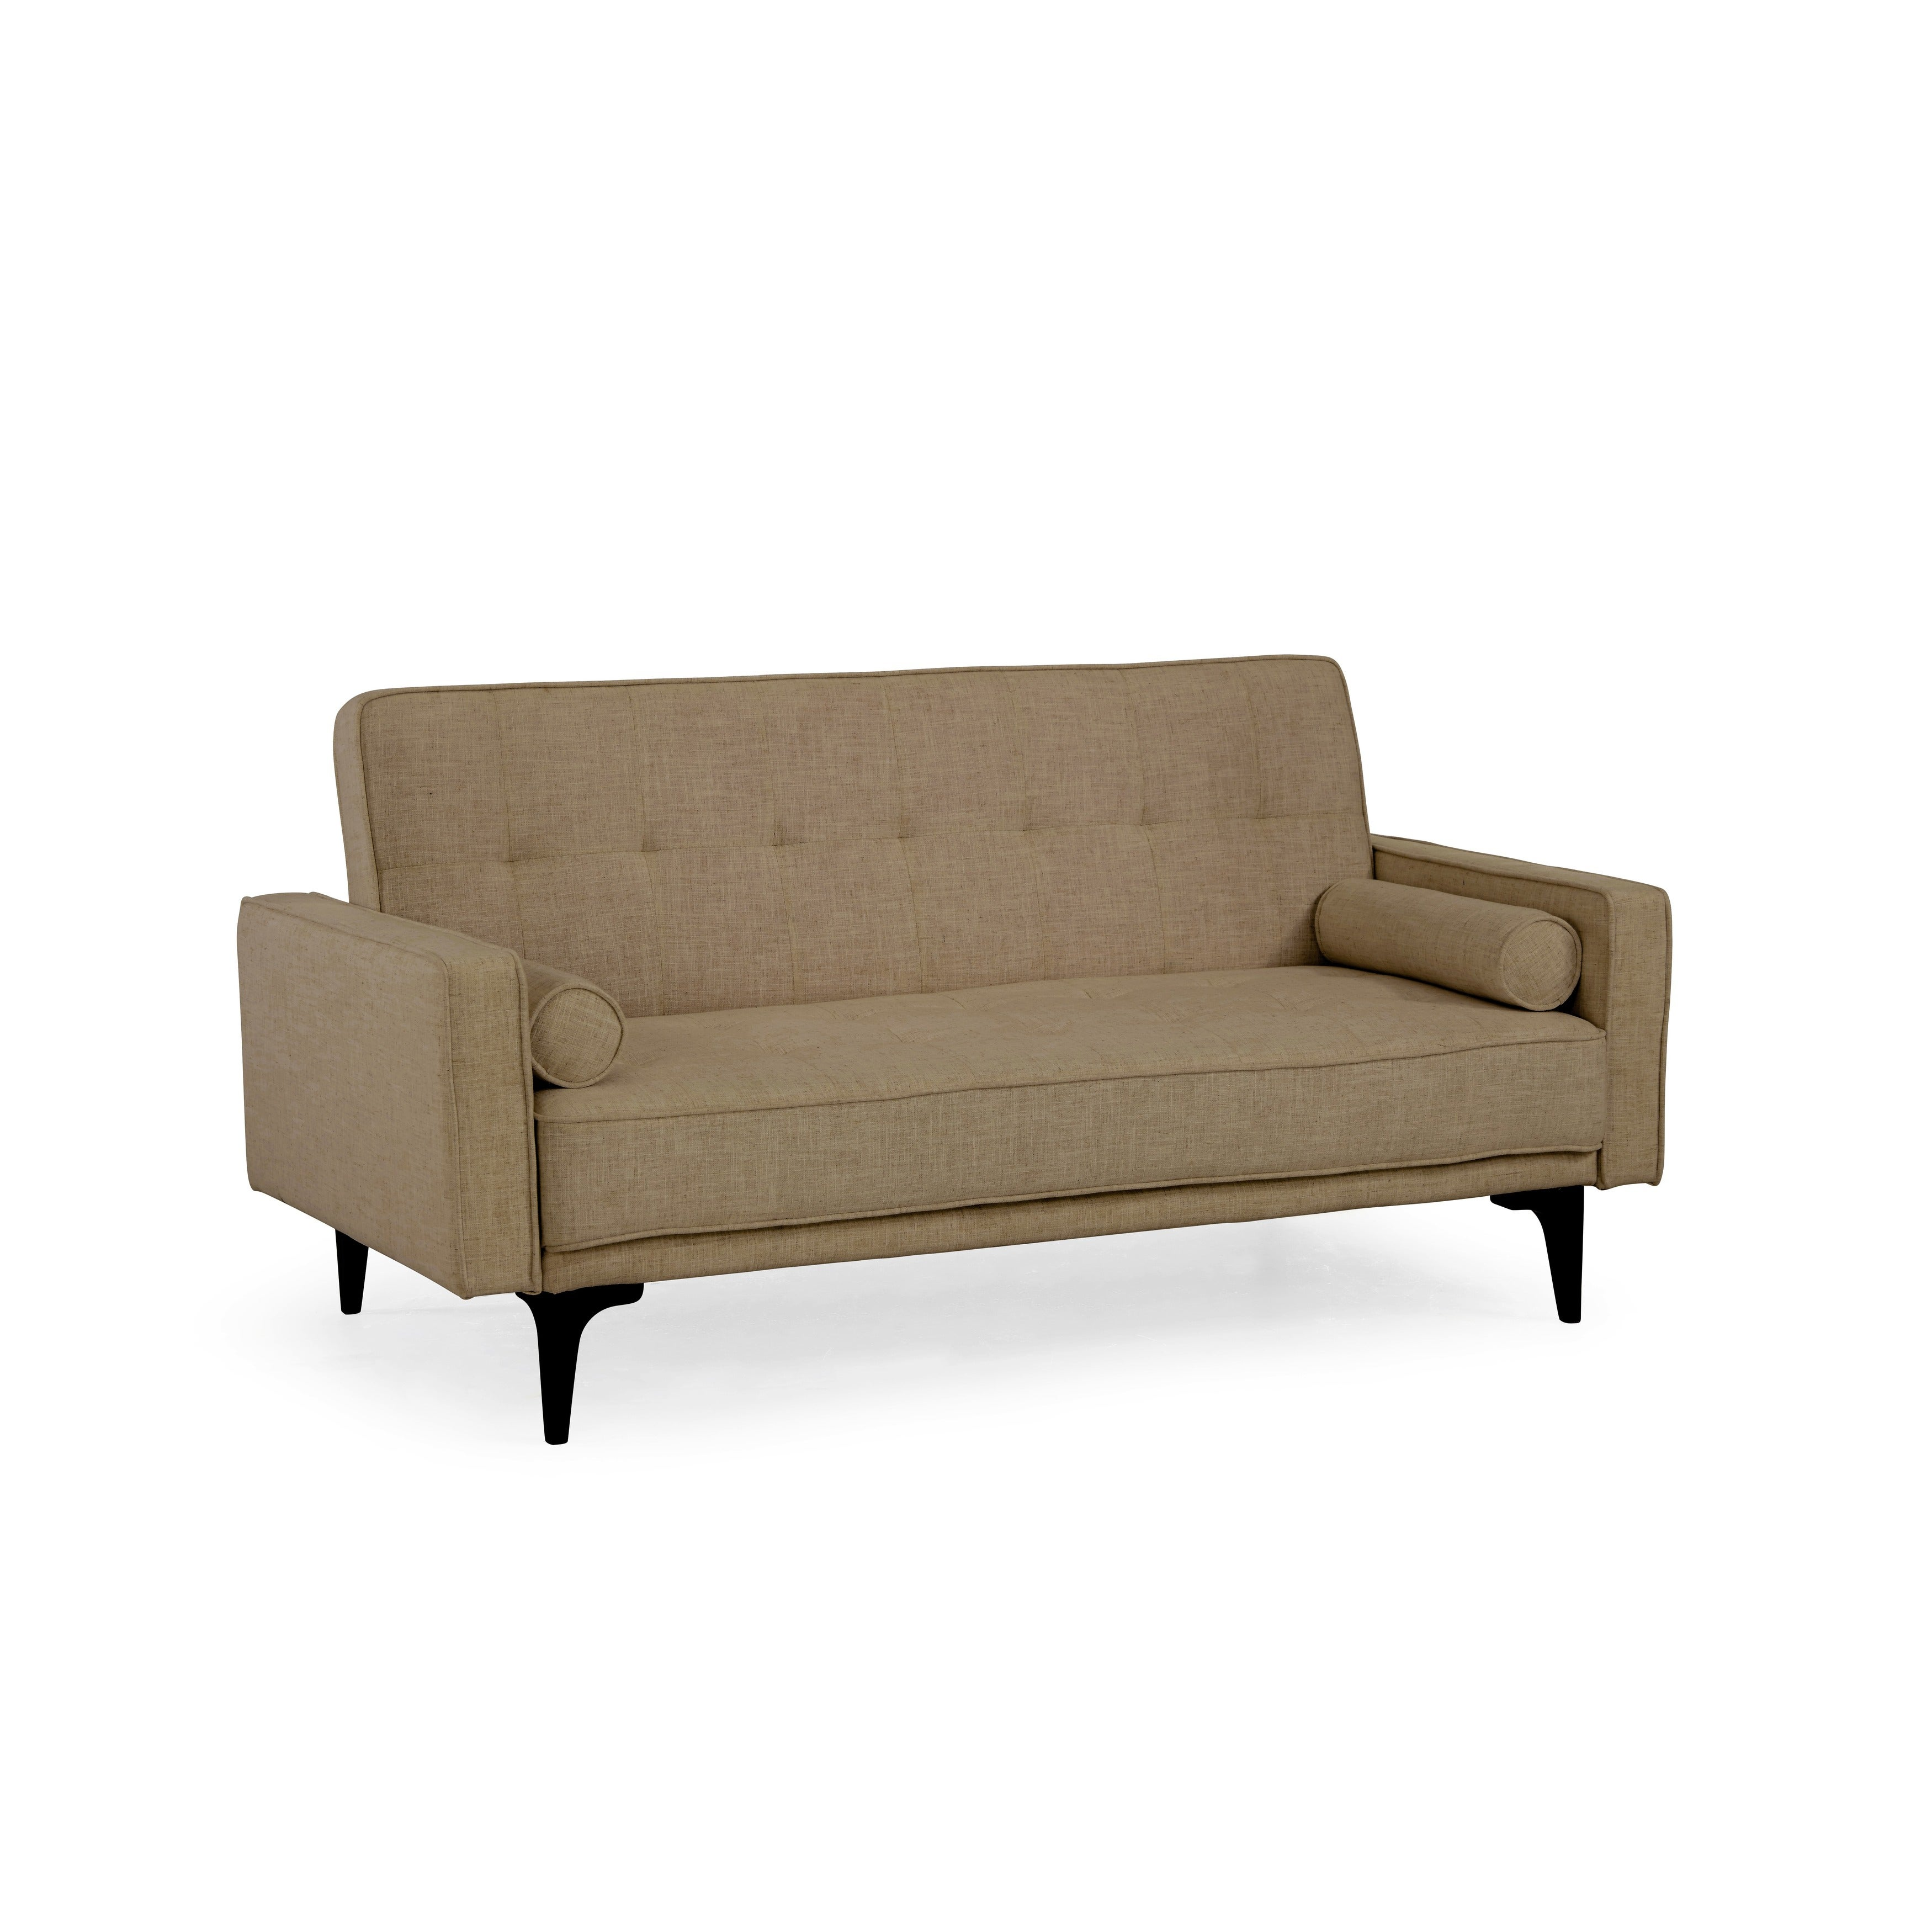 Merveilleux Shop Relax A Lounger Medina Convertible Sofa With Ottoman By Lifestyle  Solutions   Free Shipping Today   Overstock.com   18003253